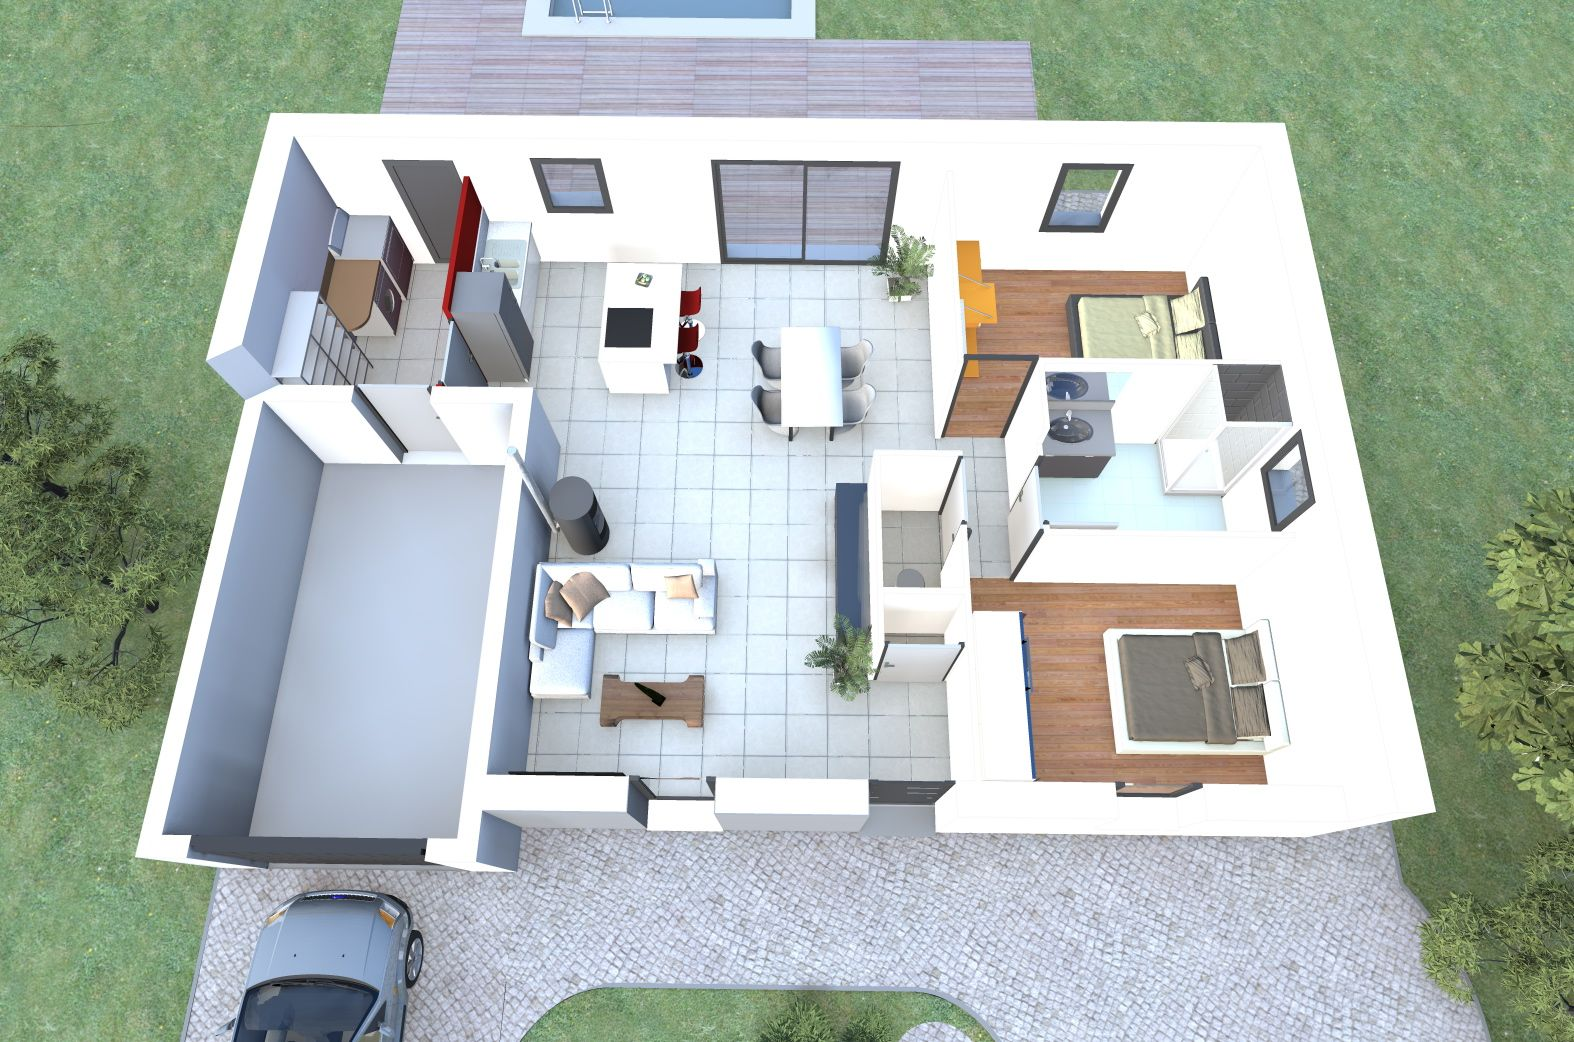 Visualisez le plan 3d dun de nos modles de maison 2 chambres visualisez le plan 3d dun de nos modles de maison 2 chambres alliance construction malvernweather Image collections